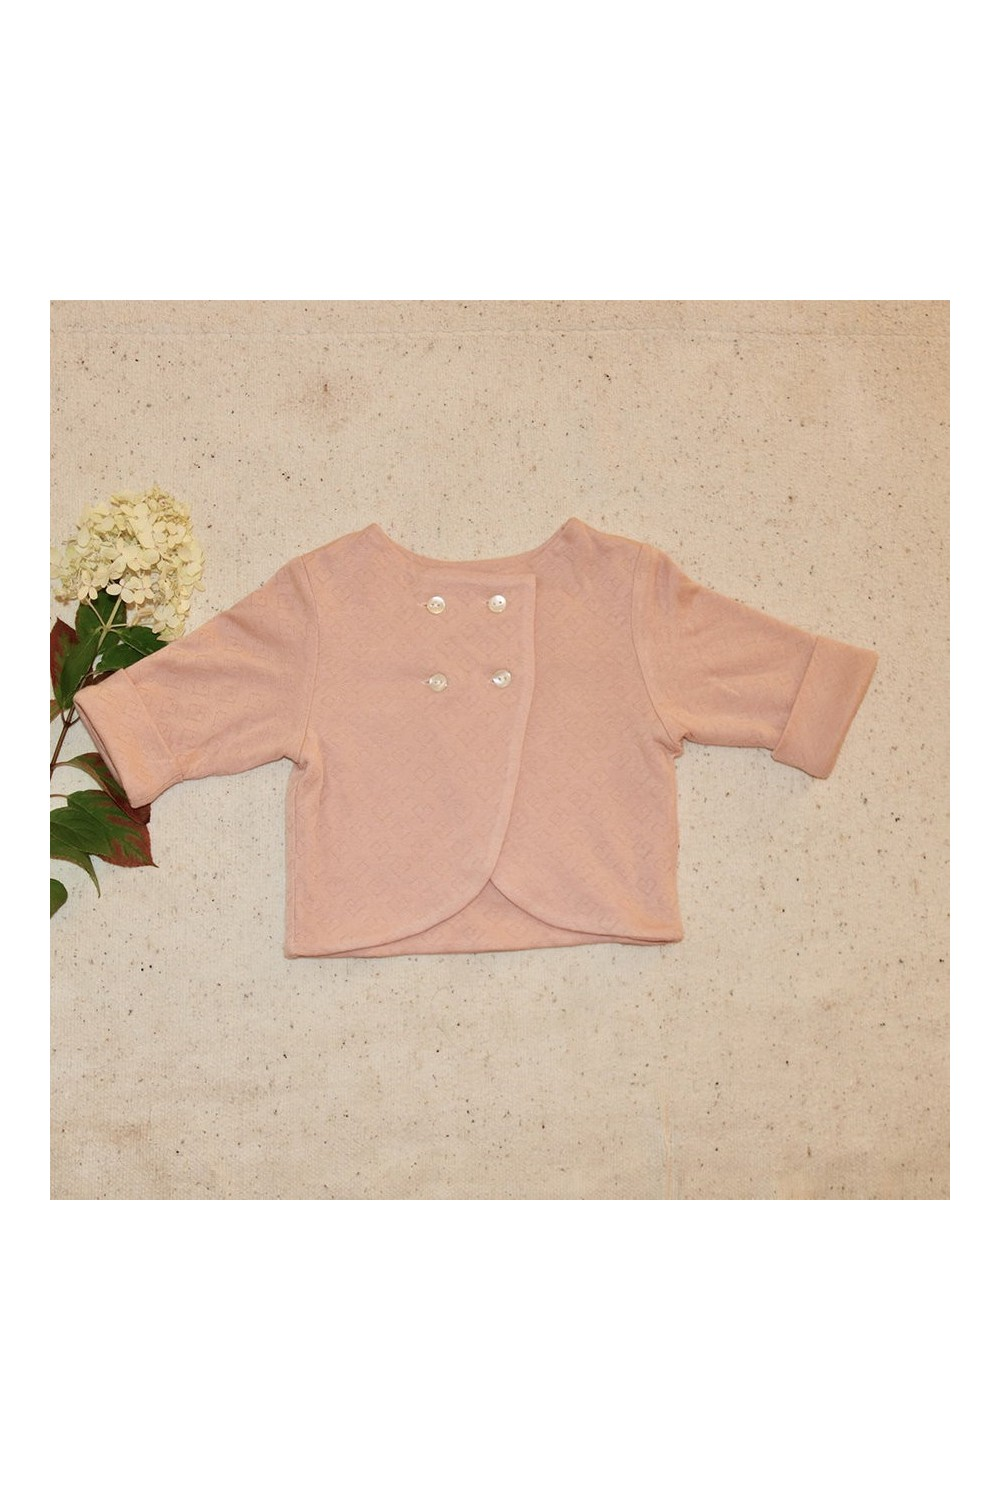 diplomate baby jacket made of pink organic cotton